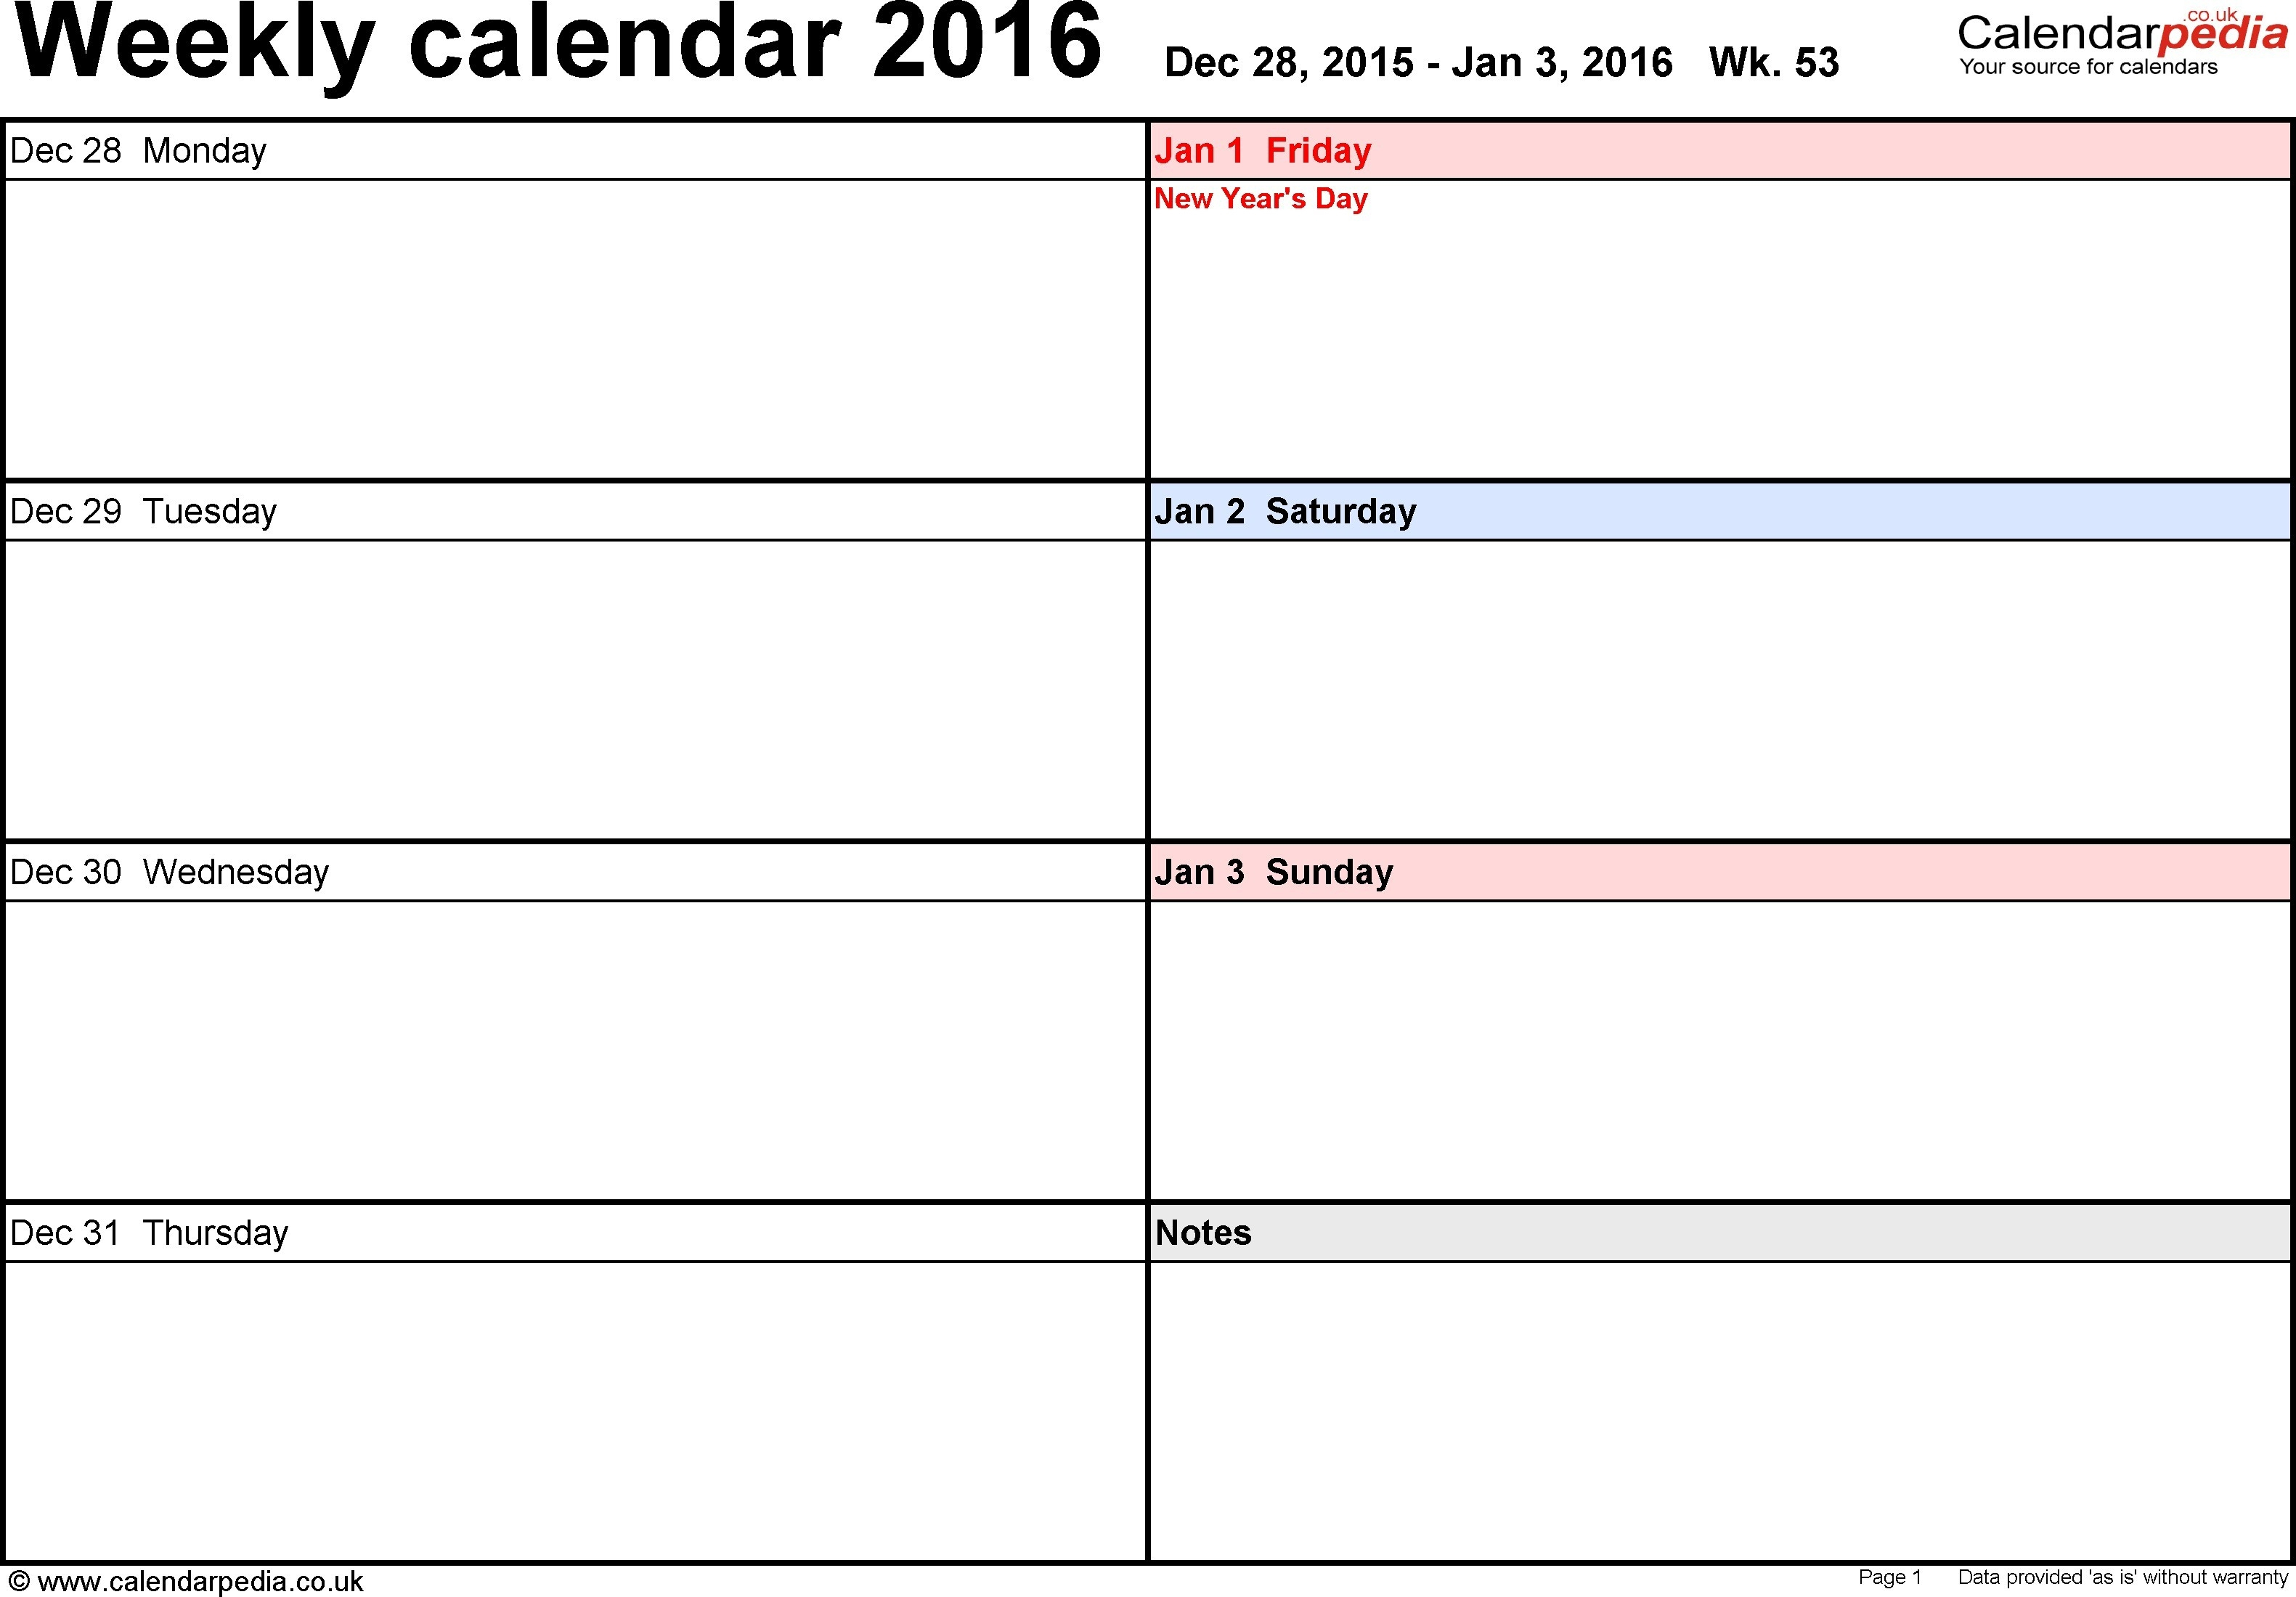 Free One Week Schedule Template | Ten Wall Calendar throughout 2 Week Induction Timetable Free Template